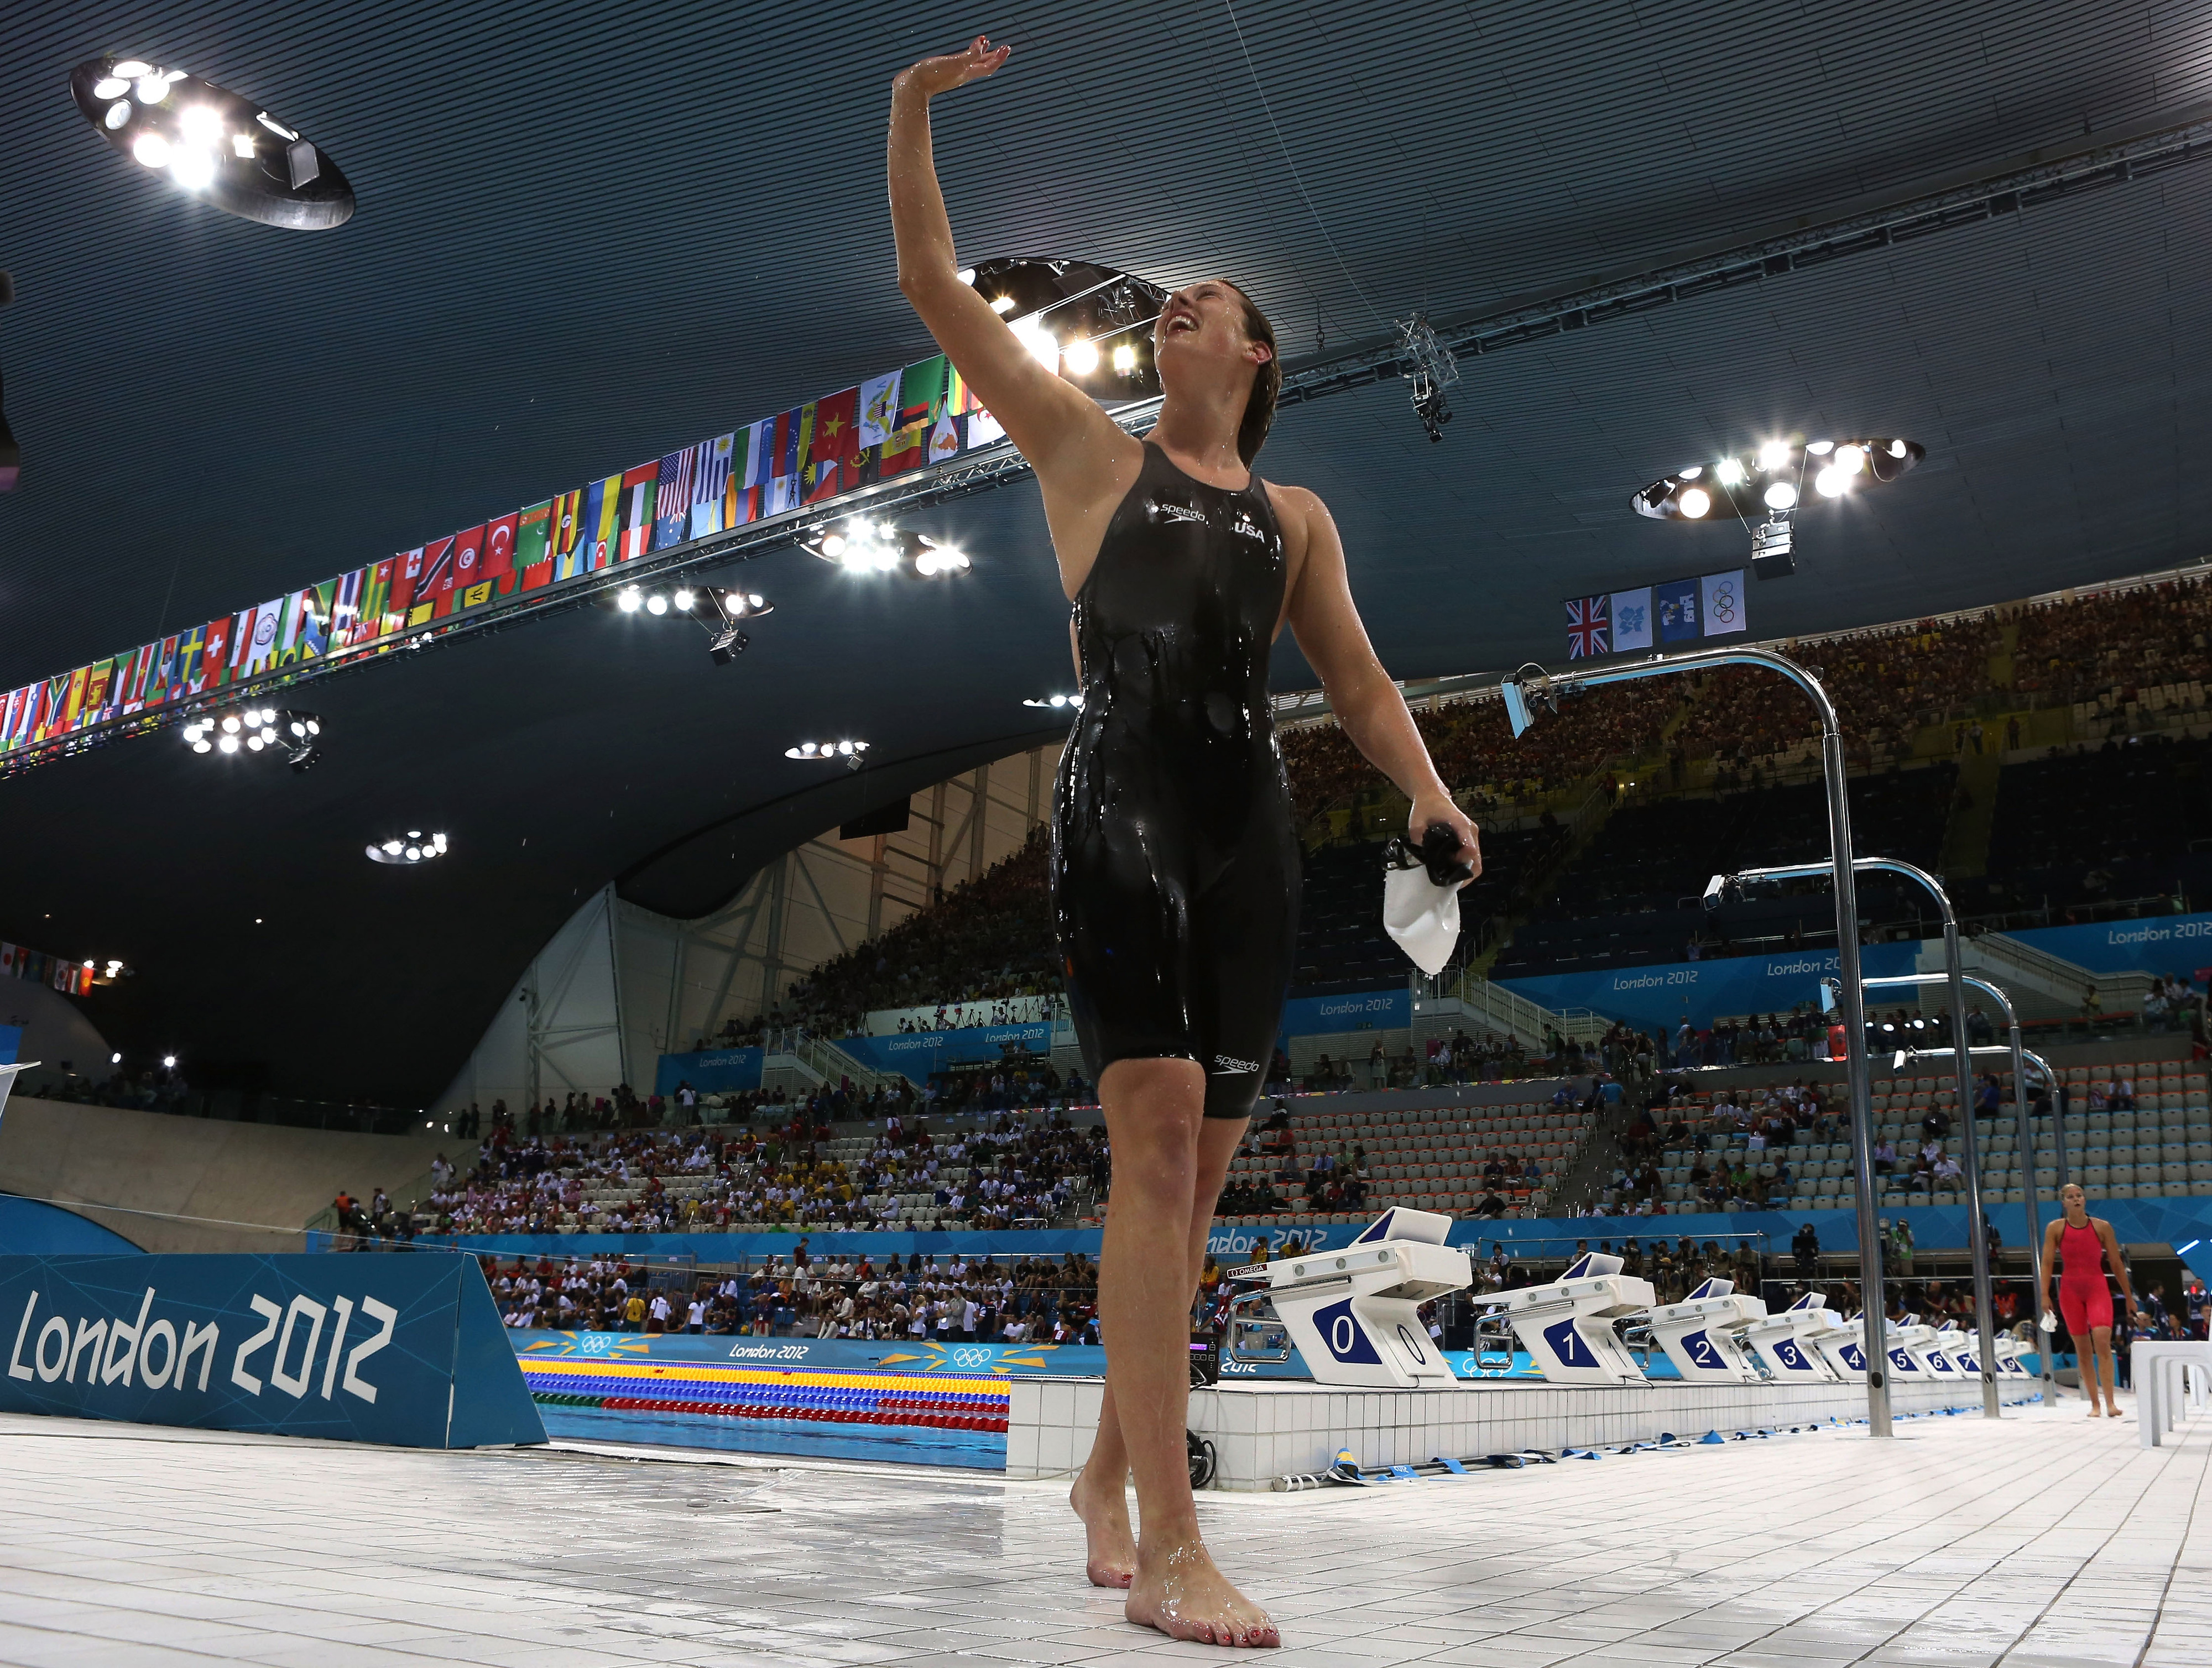 Georgia's Allison Schmitt (USA) won gold and set an Olympic record in the 200m freestyle. She is the conference's first winner of three medals in 2012.